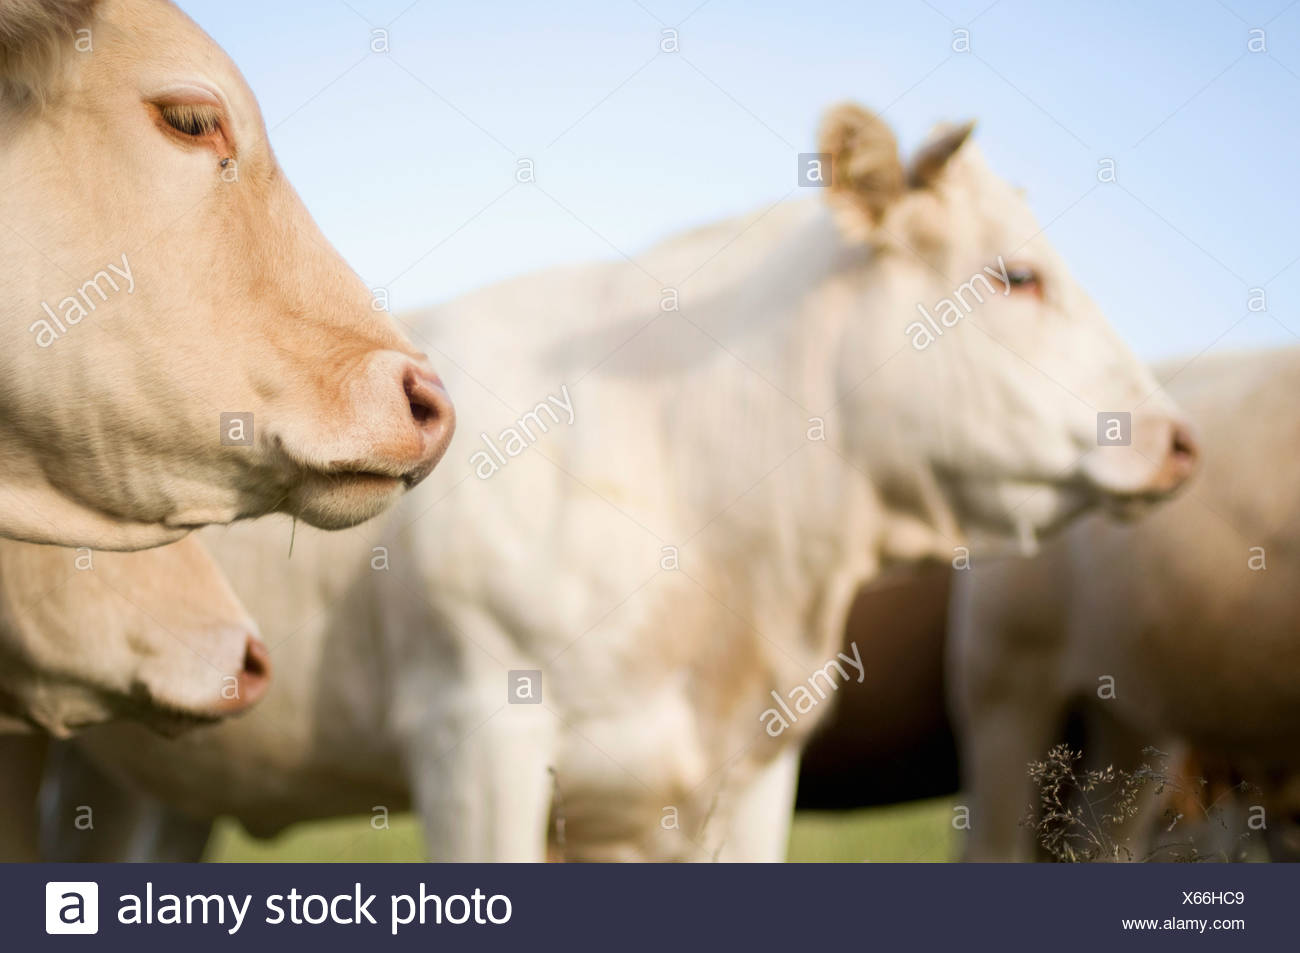 Cows - Stock Image